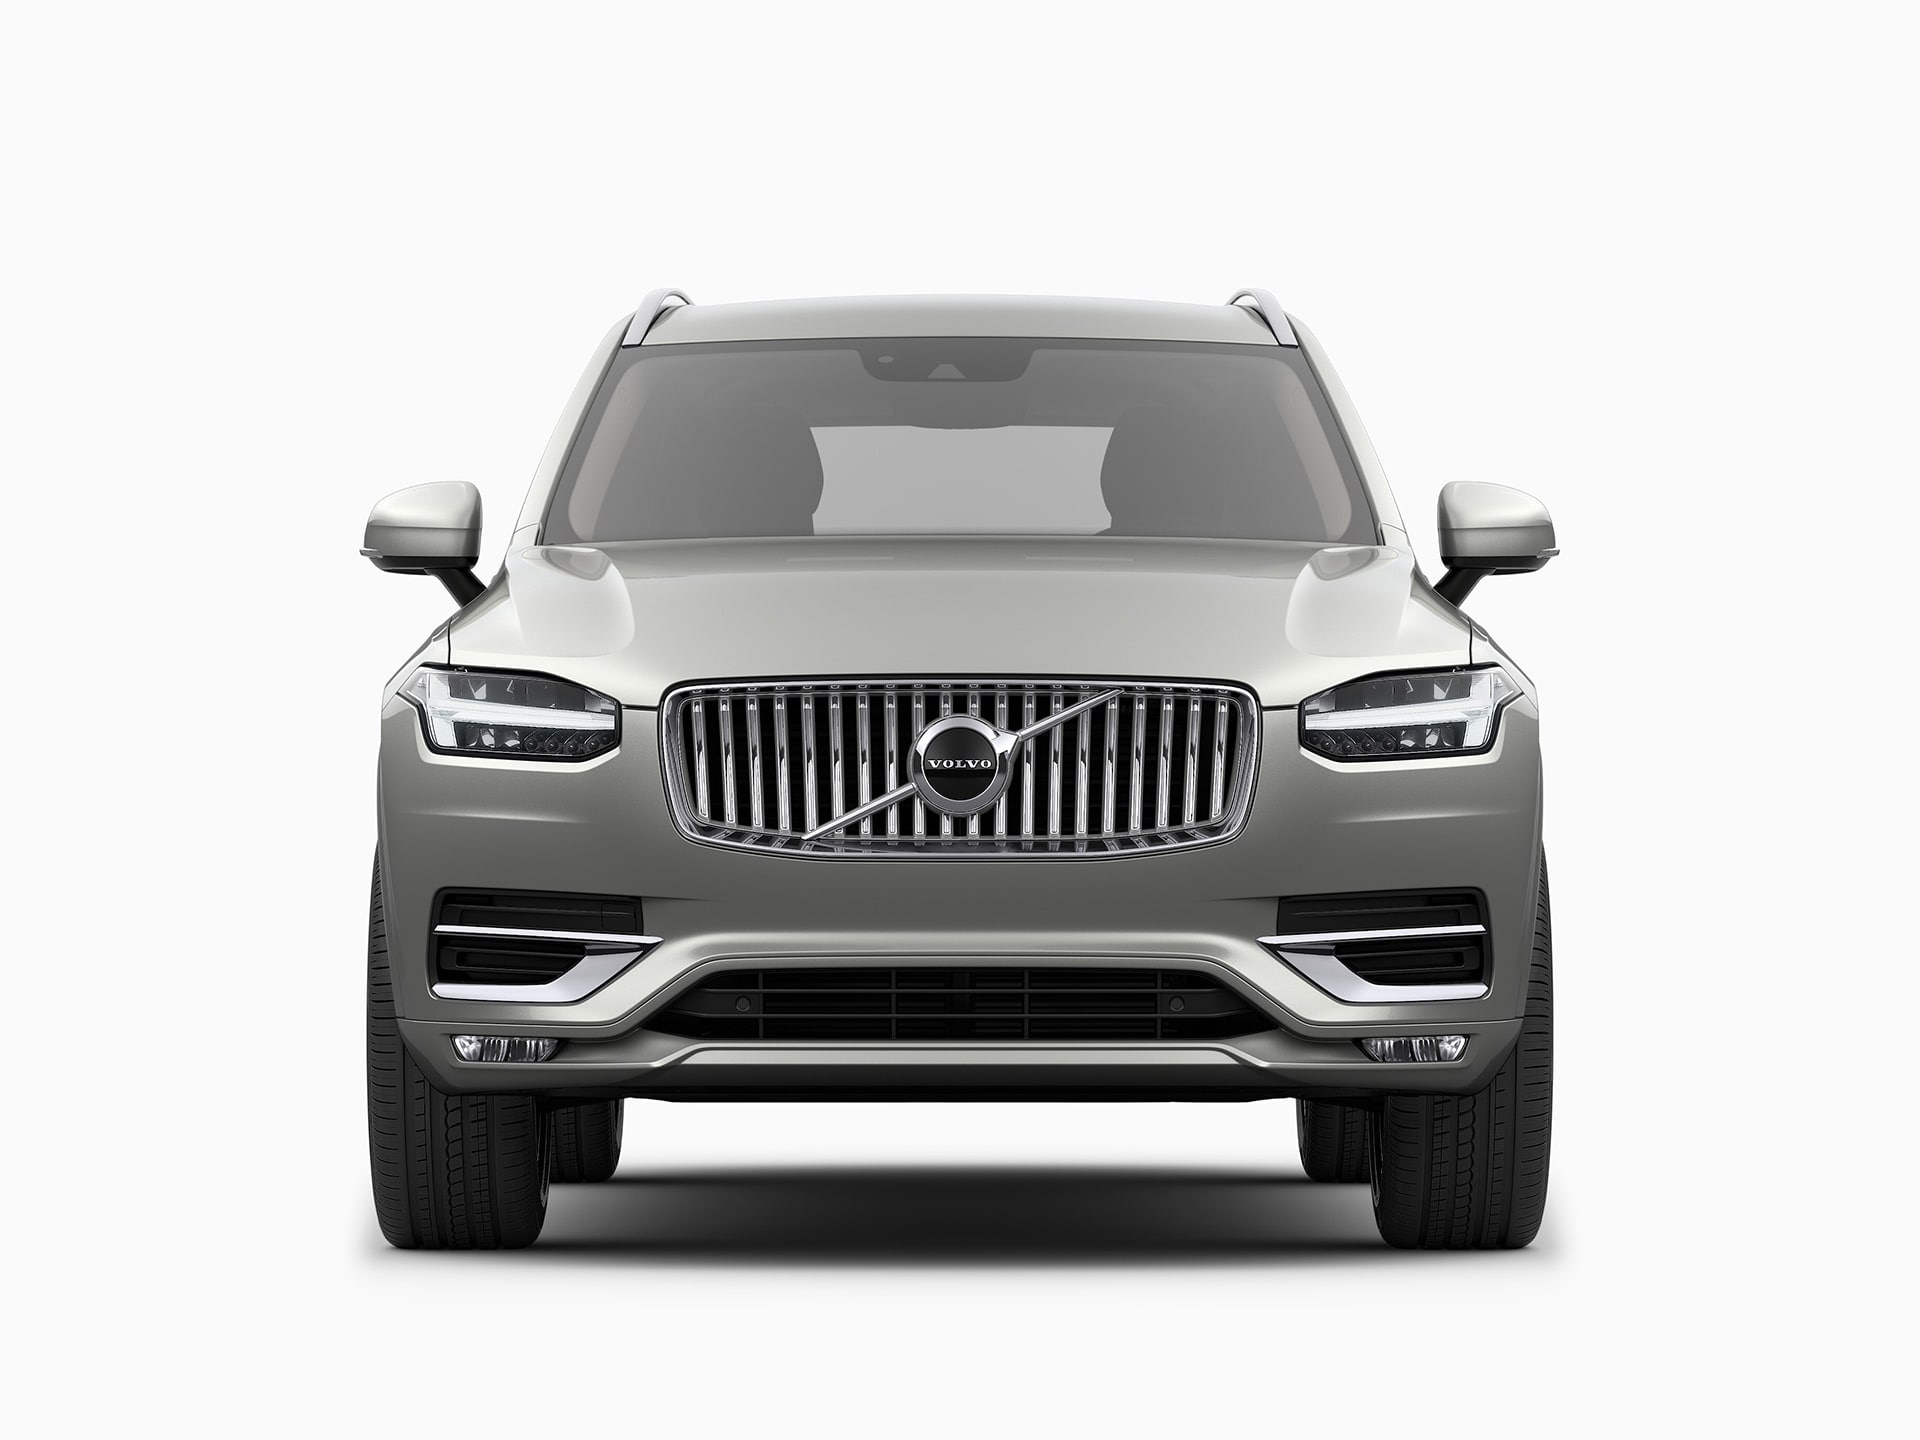 The front of a Volvo XC90 SUV.